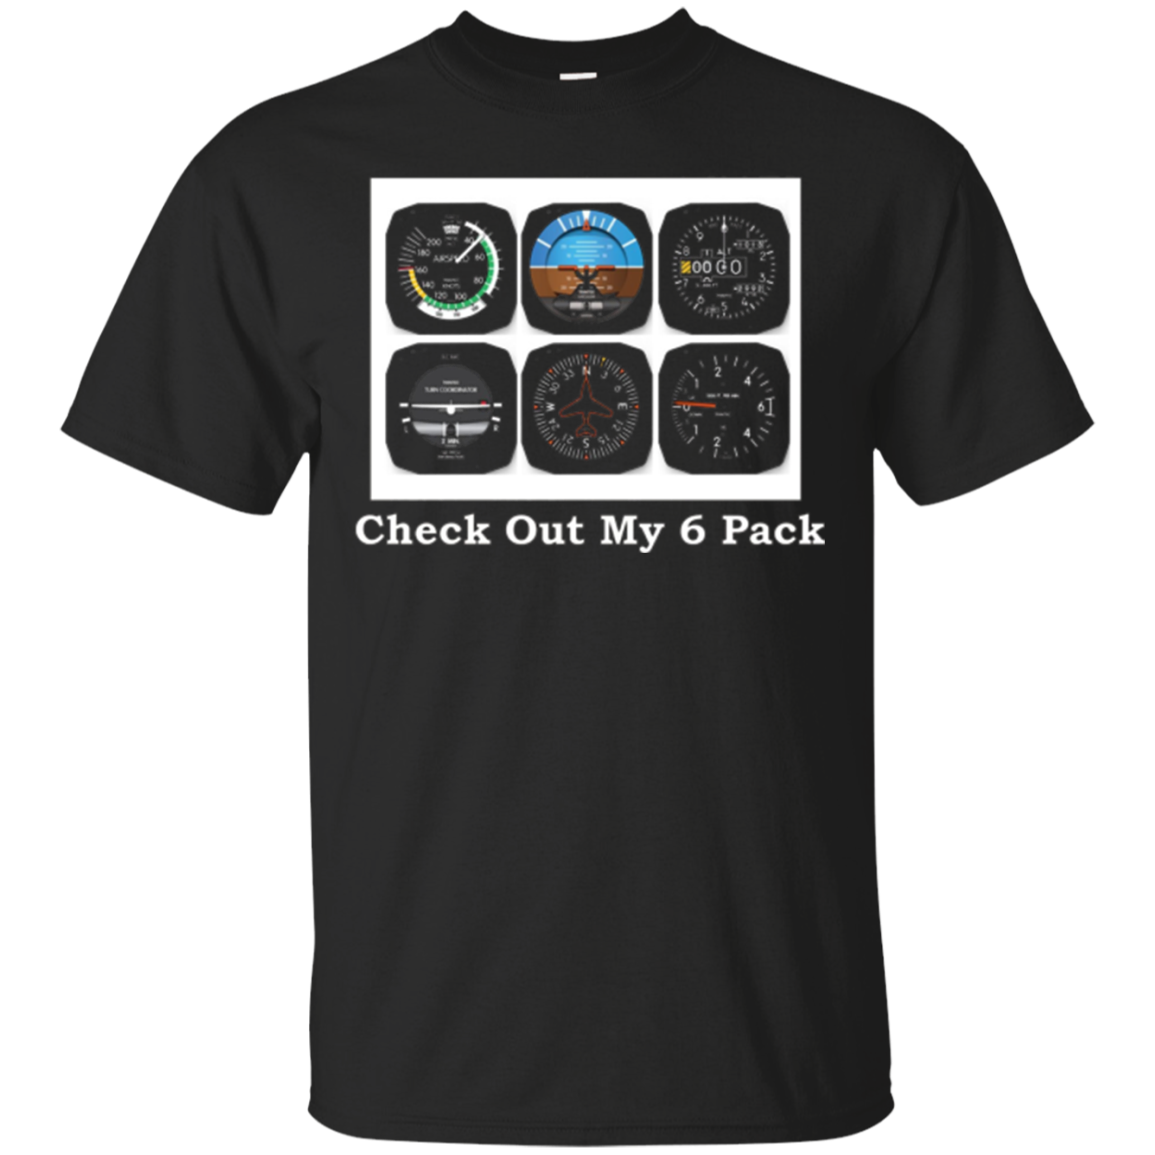 Aviation Airplane T-Shirt - Instrument Check Out My 6 Pack